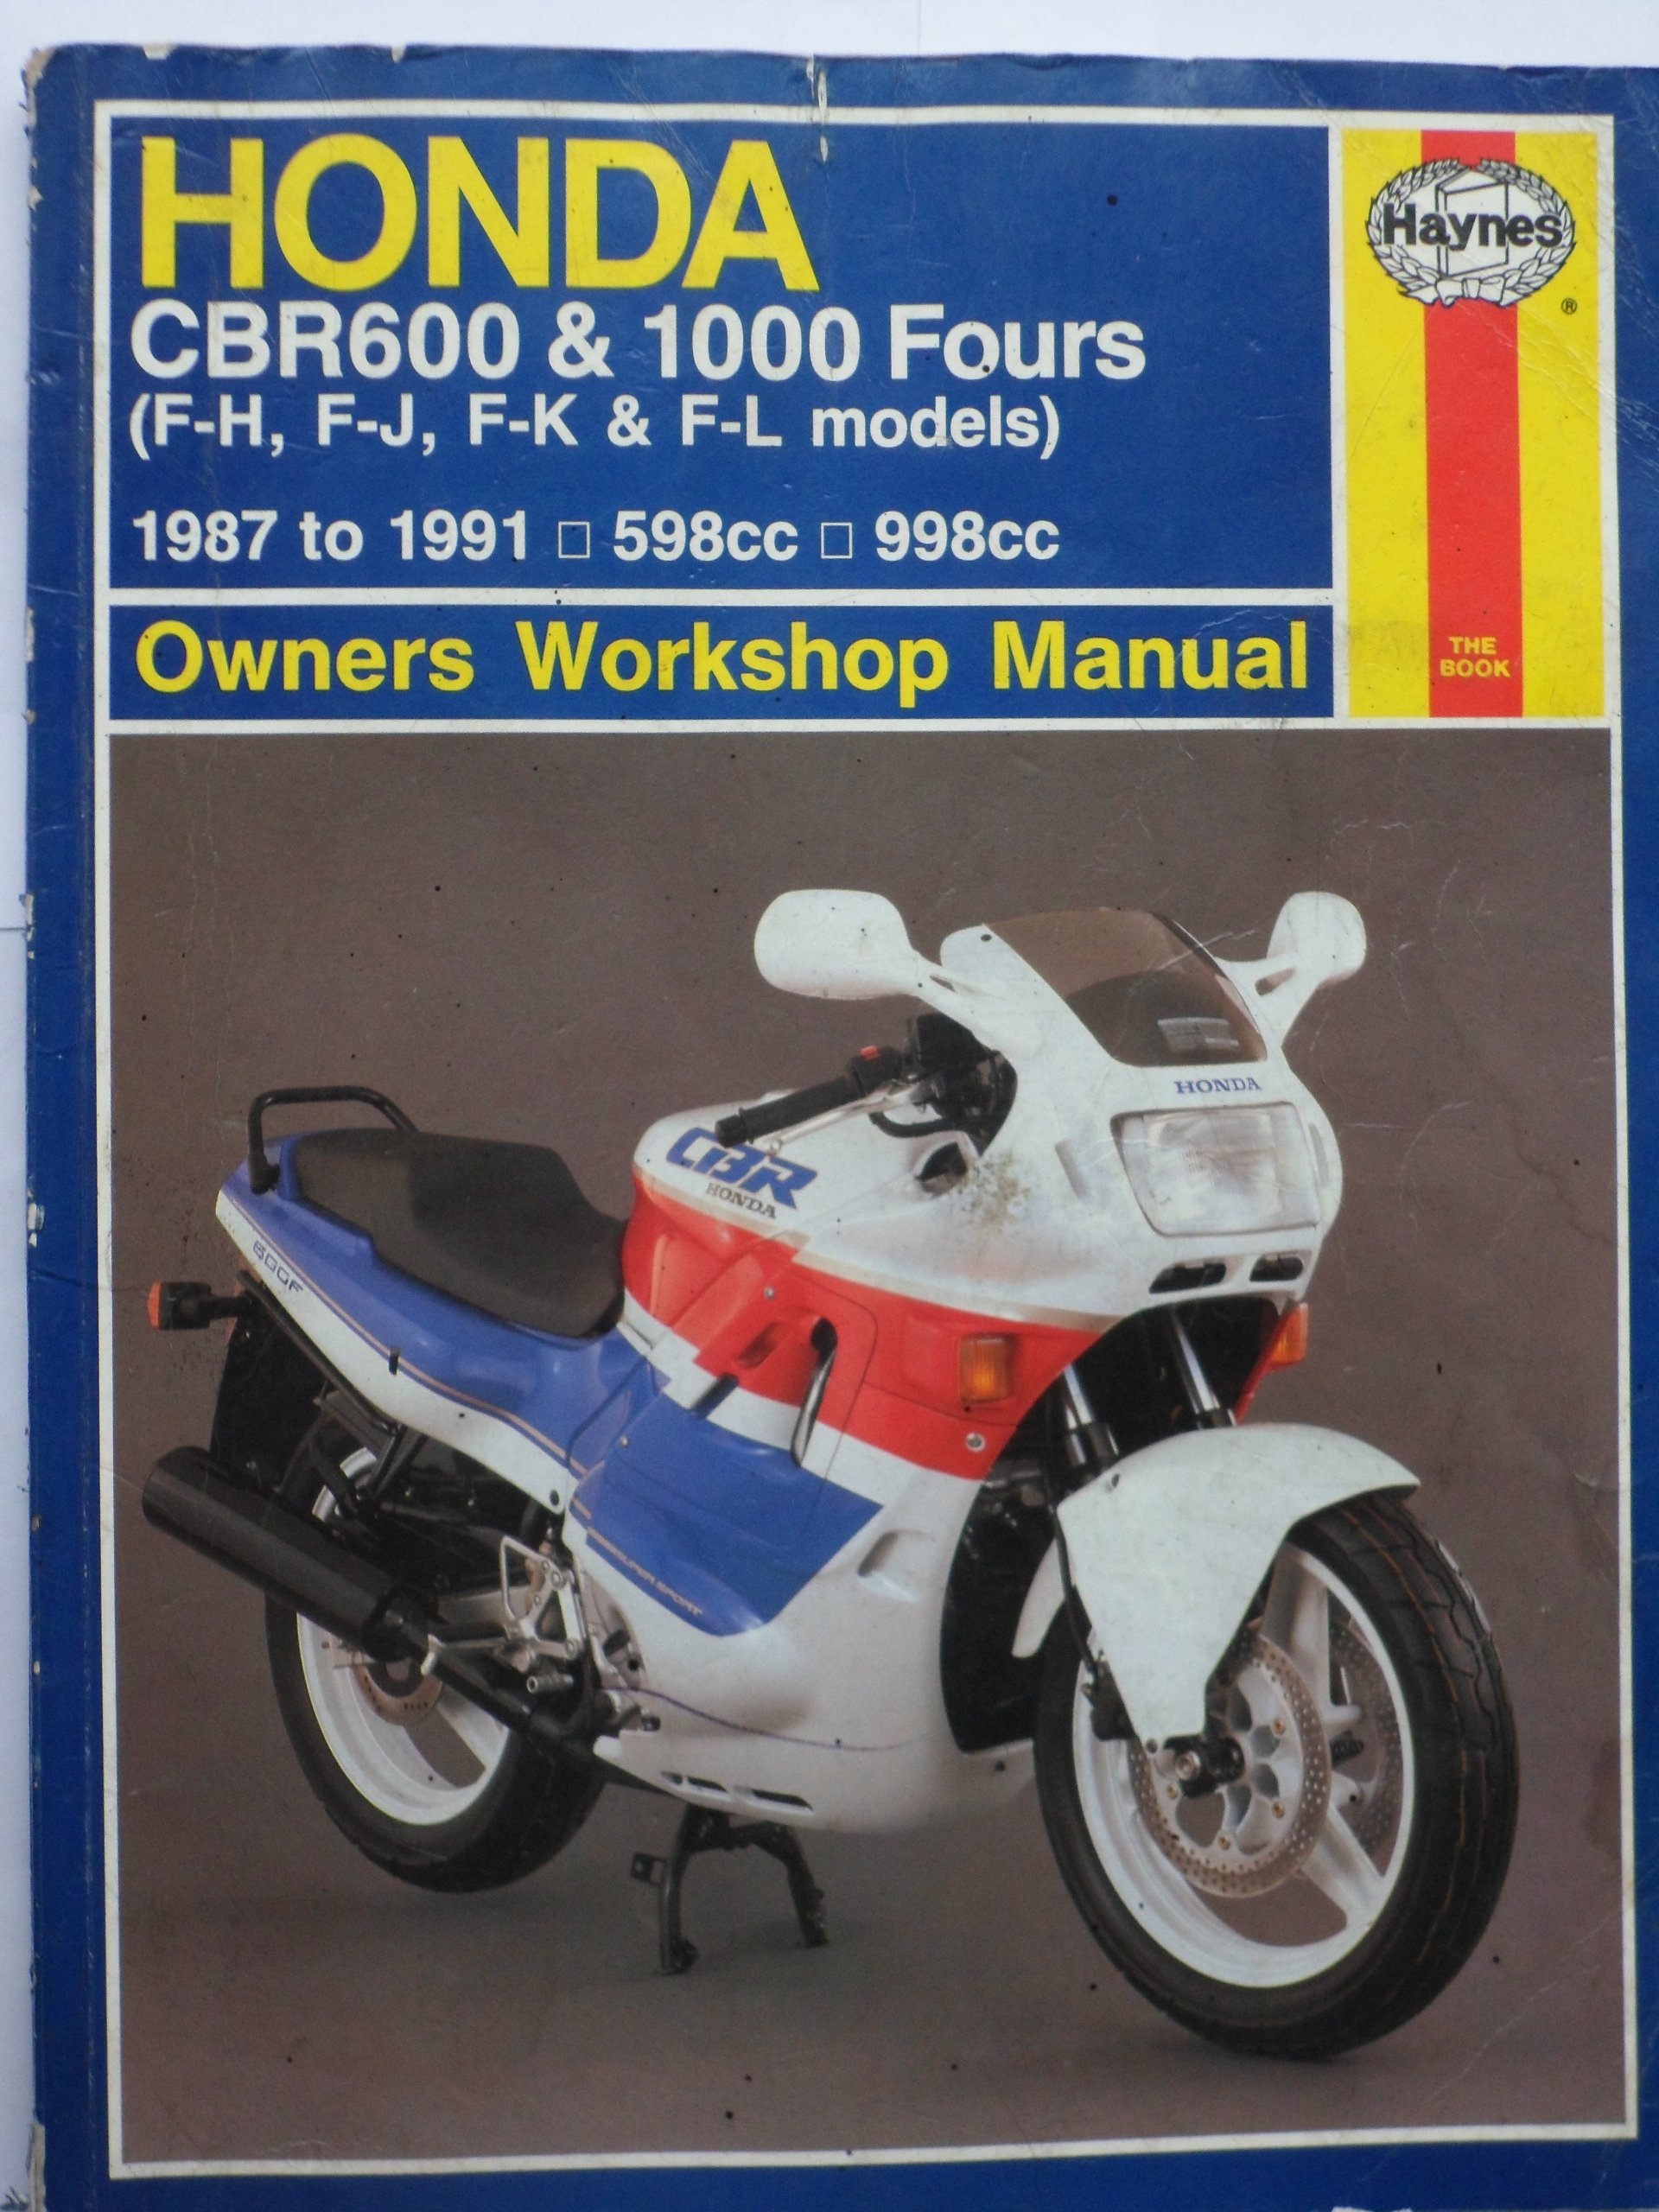 Honda Cbr600 & 1000 Fours Owners Workshop Manual (Hayne's Automotive Repair  Manual): Mark Coombs: 9781850107309: Amazon.com: Books